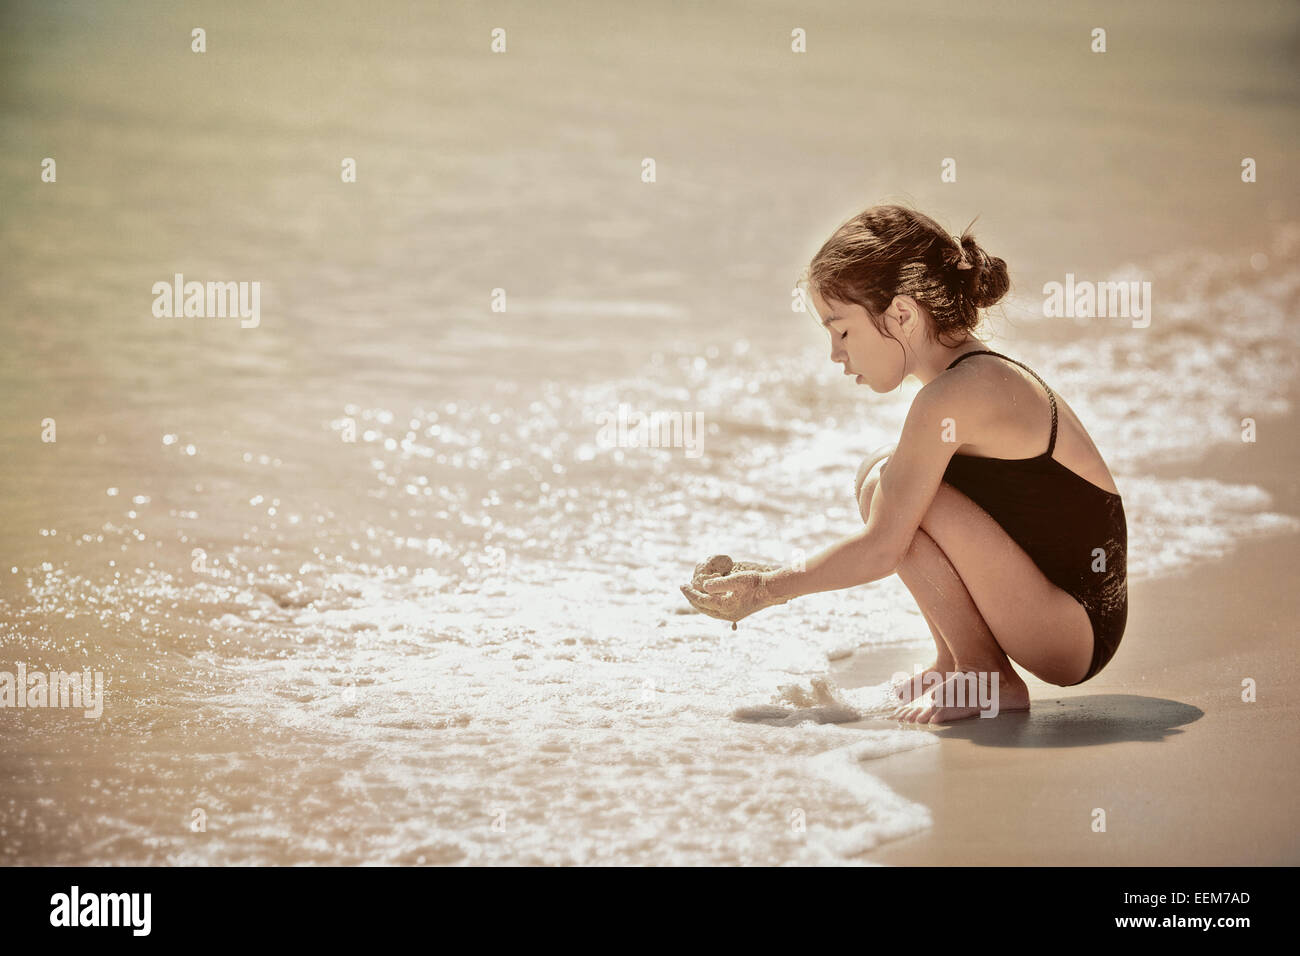 Girl crouching by water's edge on sandy beach and holding wet sand in hands - Stock Image